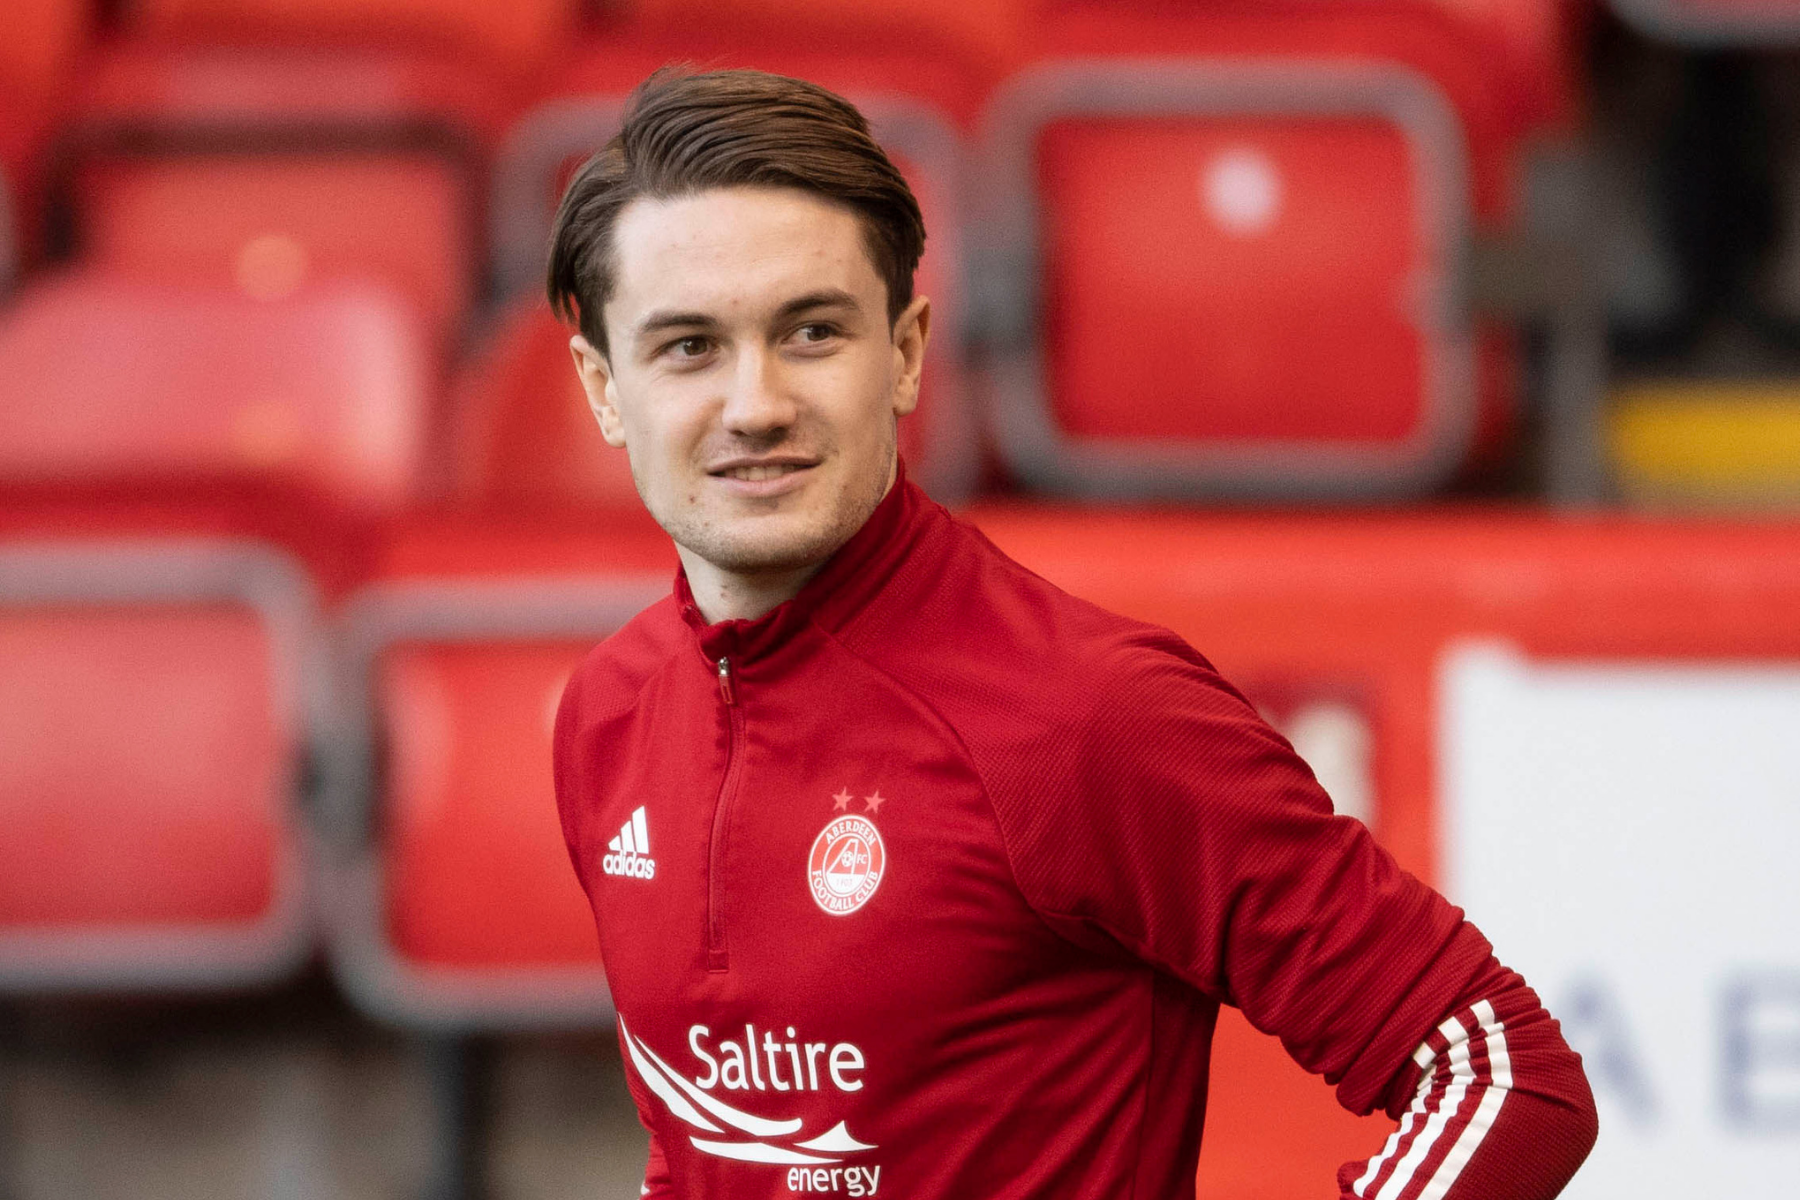 Aberdeen boss Derek McInnes confirms Rangers are interested in Scott Wright